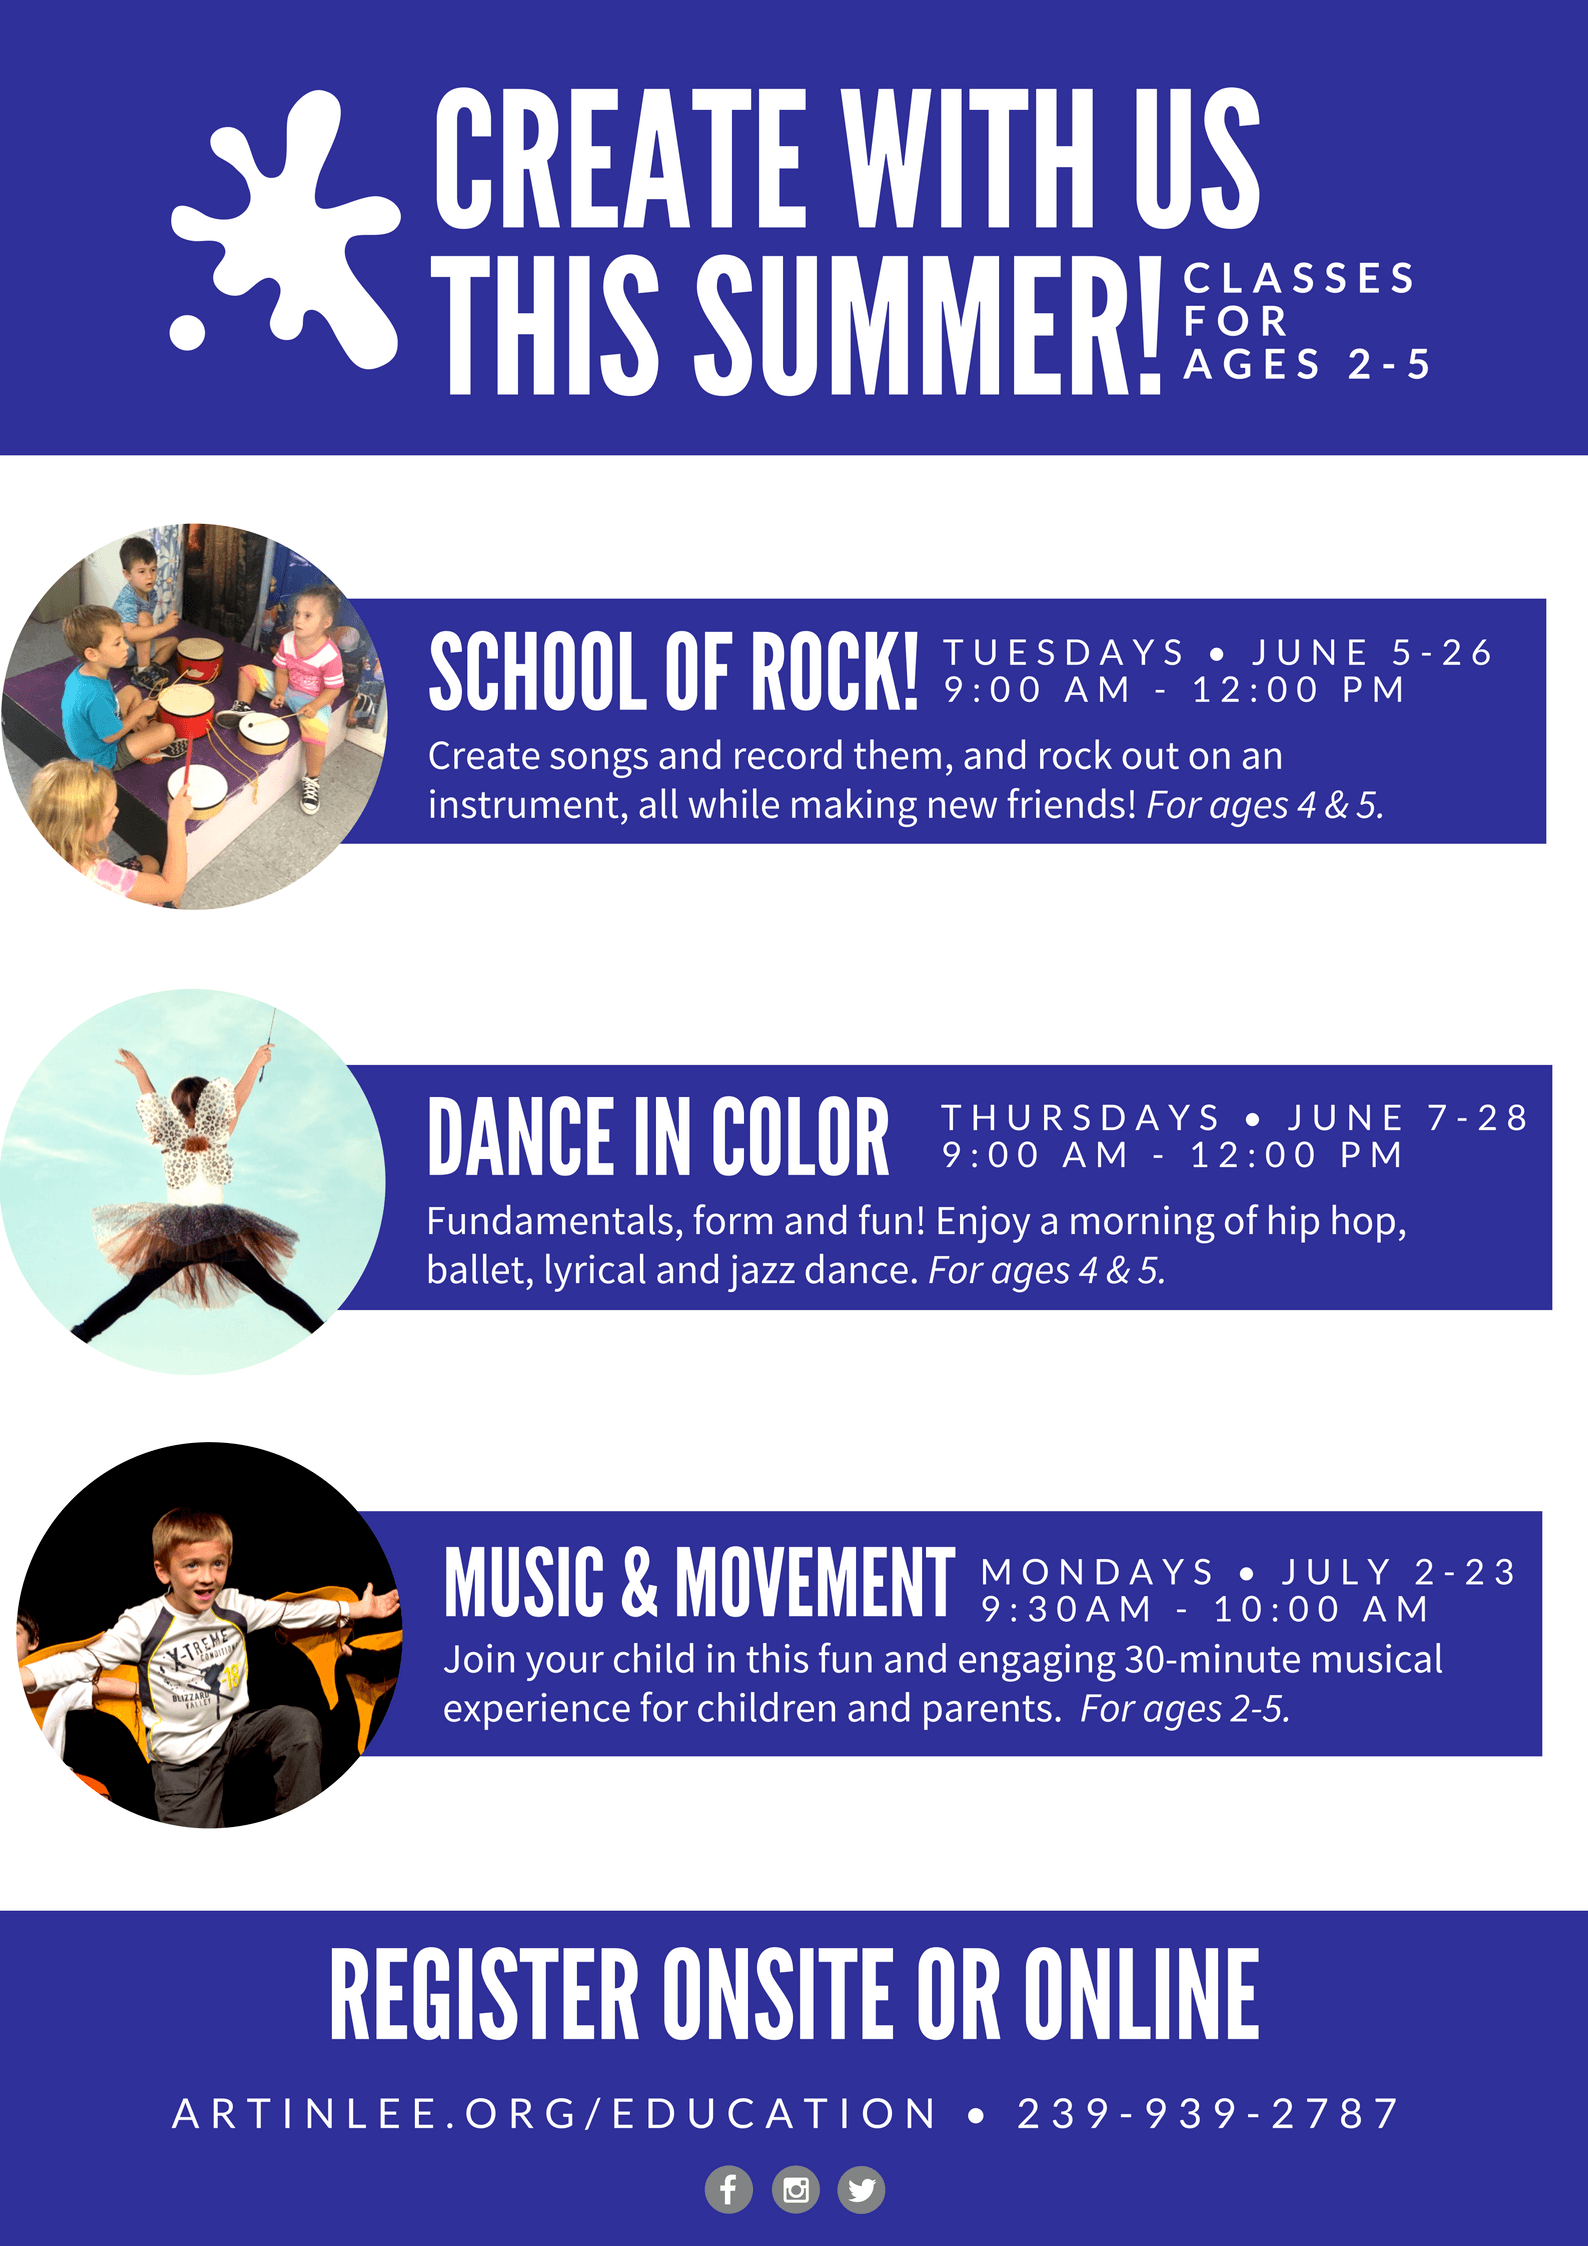 Minis Summer Series Classes - Alliance for the Arts